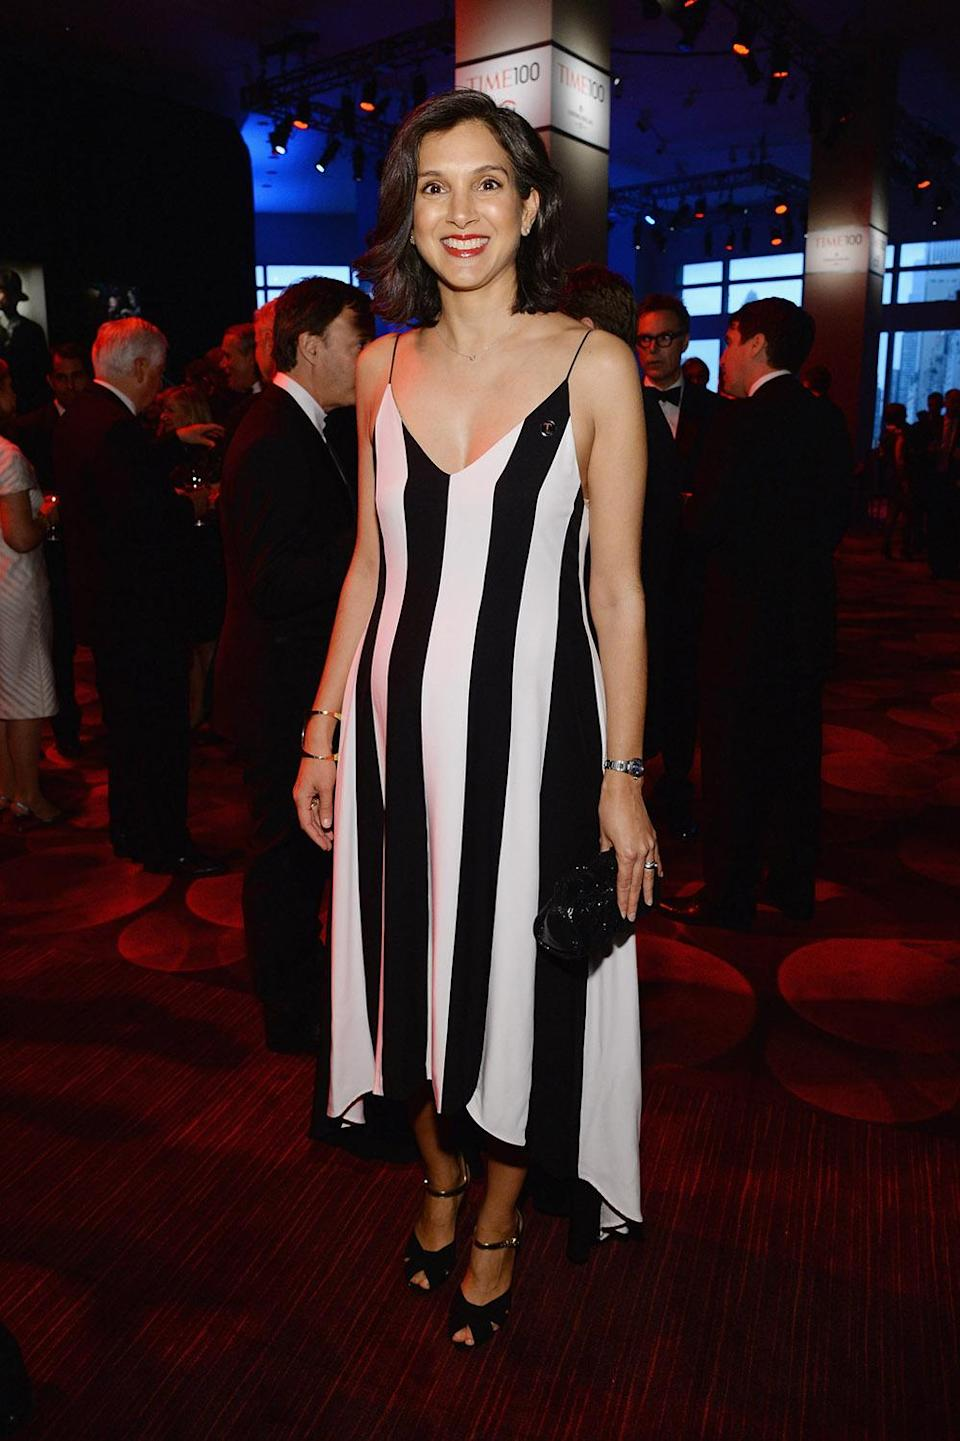 Radhika Jones attends the Time 100 Gala, Time's 100 most influential people in the world, in 2014 in New York City. (Photo: Larry Busacca/Getty Images for Time)